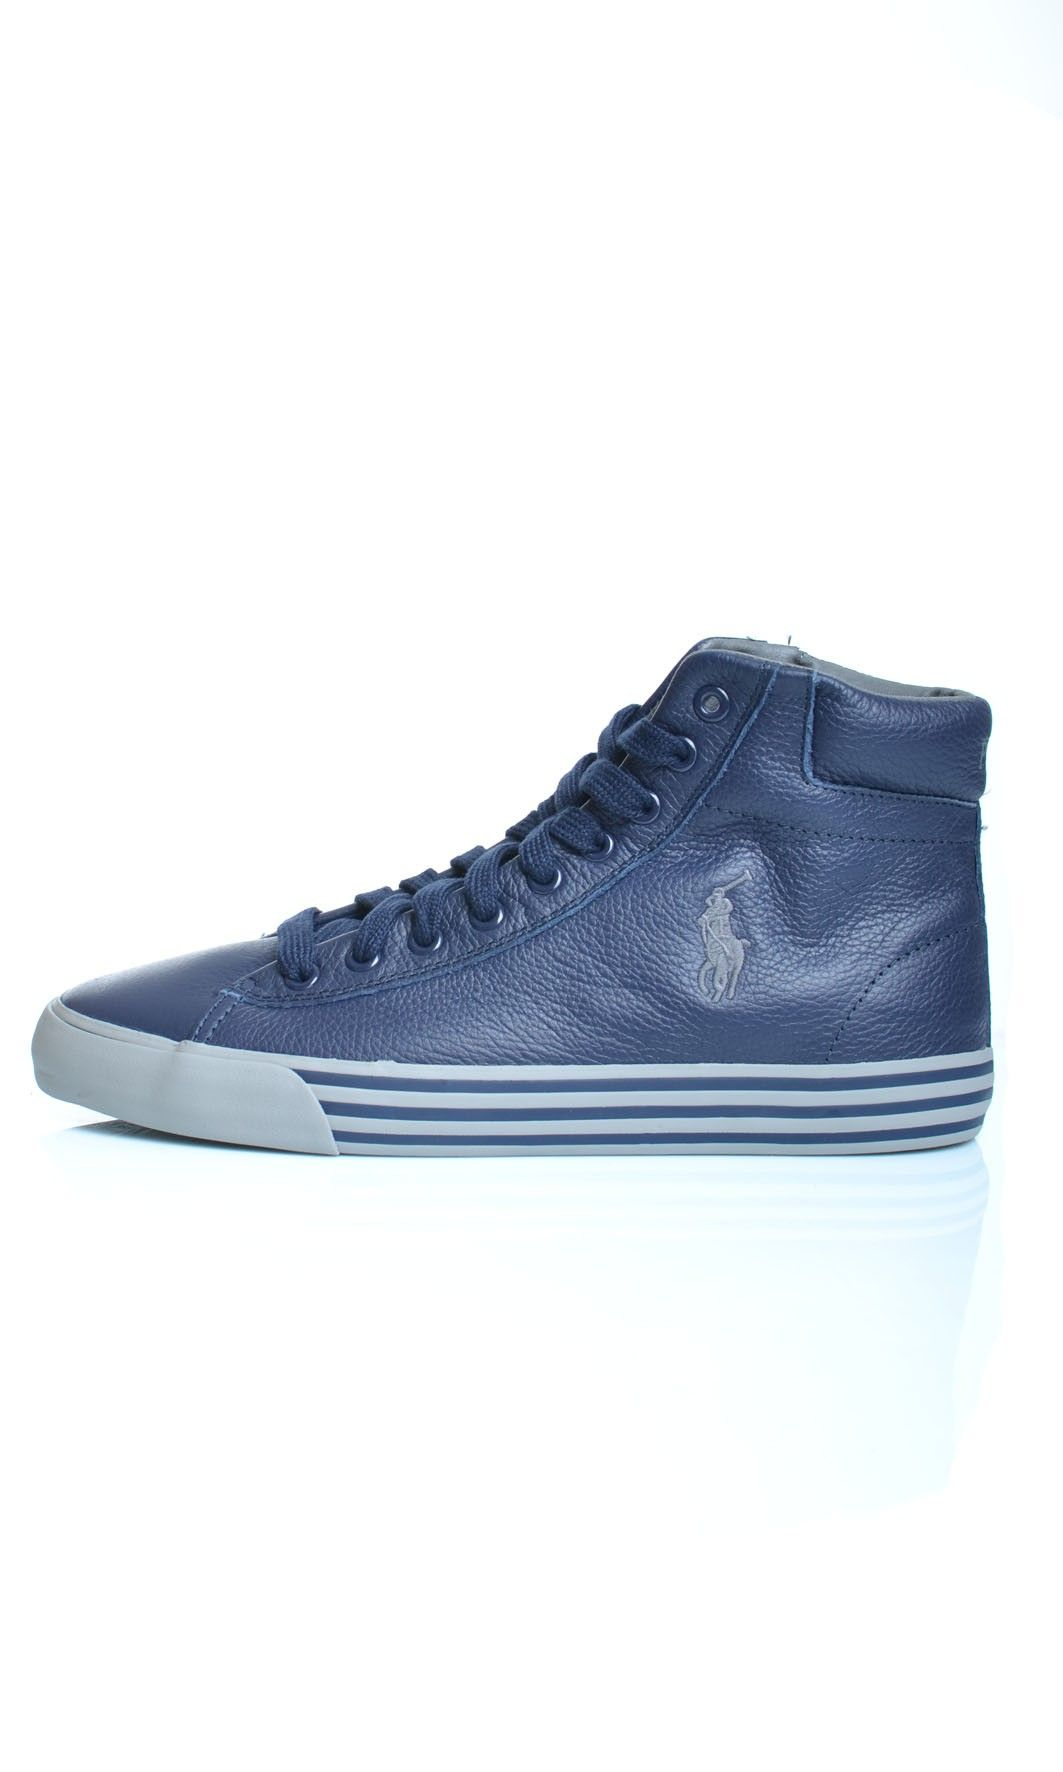 d0824174a1 Scarpe Polo Ralph Lauren HARVEY MID In Pelle Sneakers Alte - blu ...